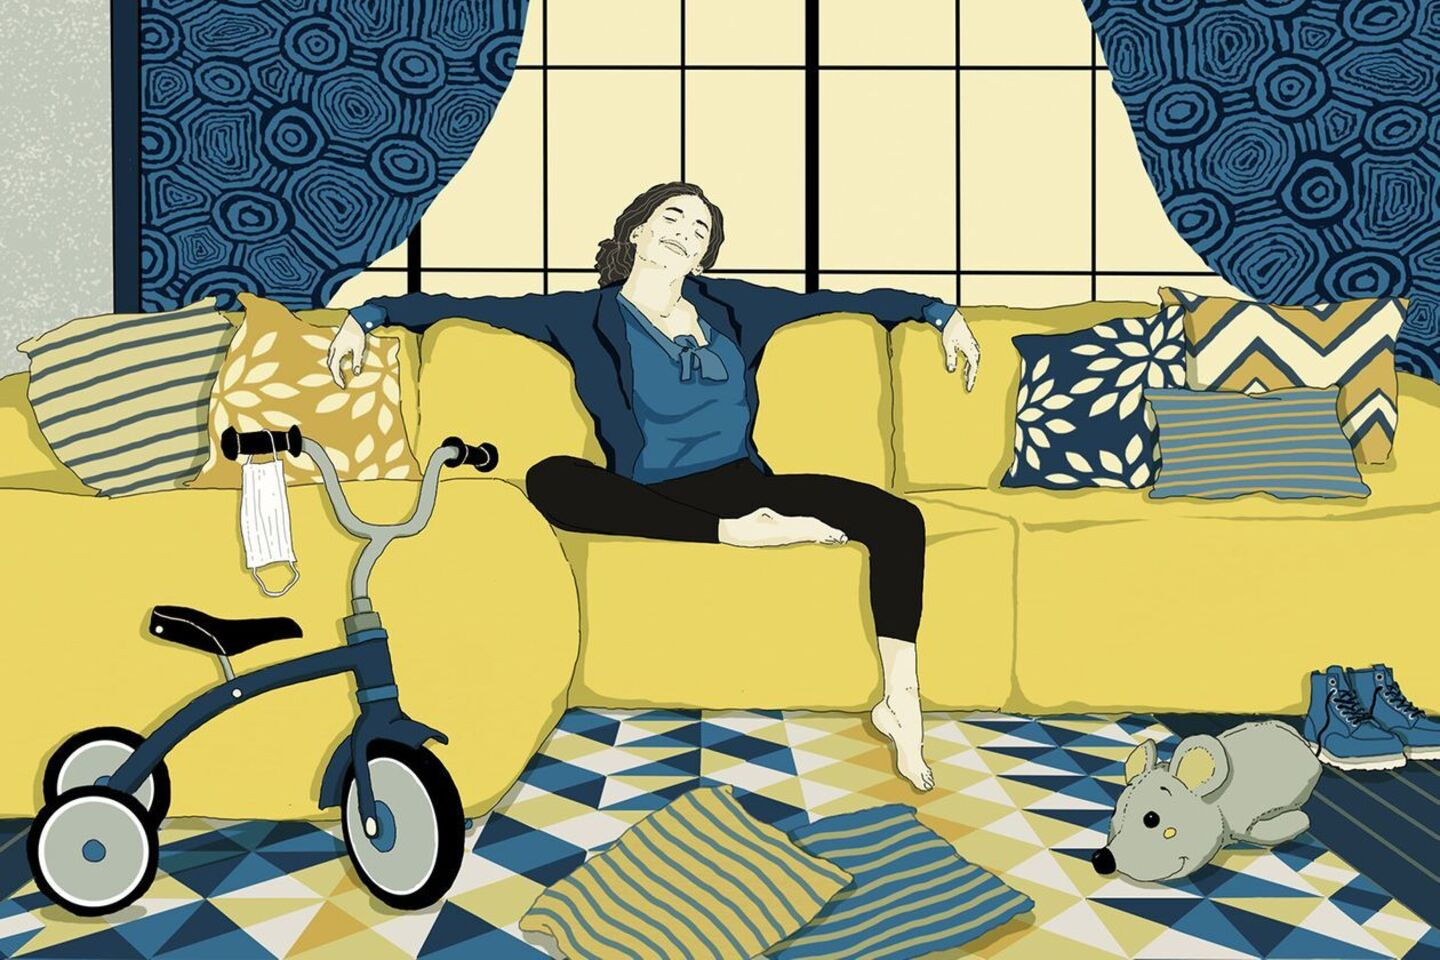 Woman relaxing on couch in a house